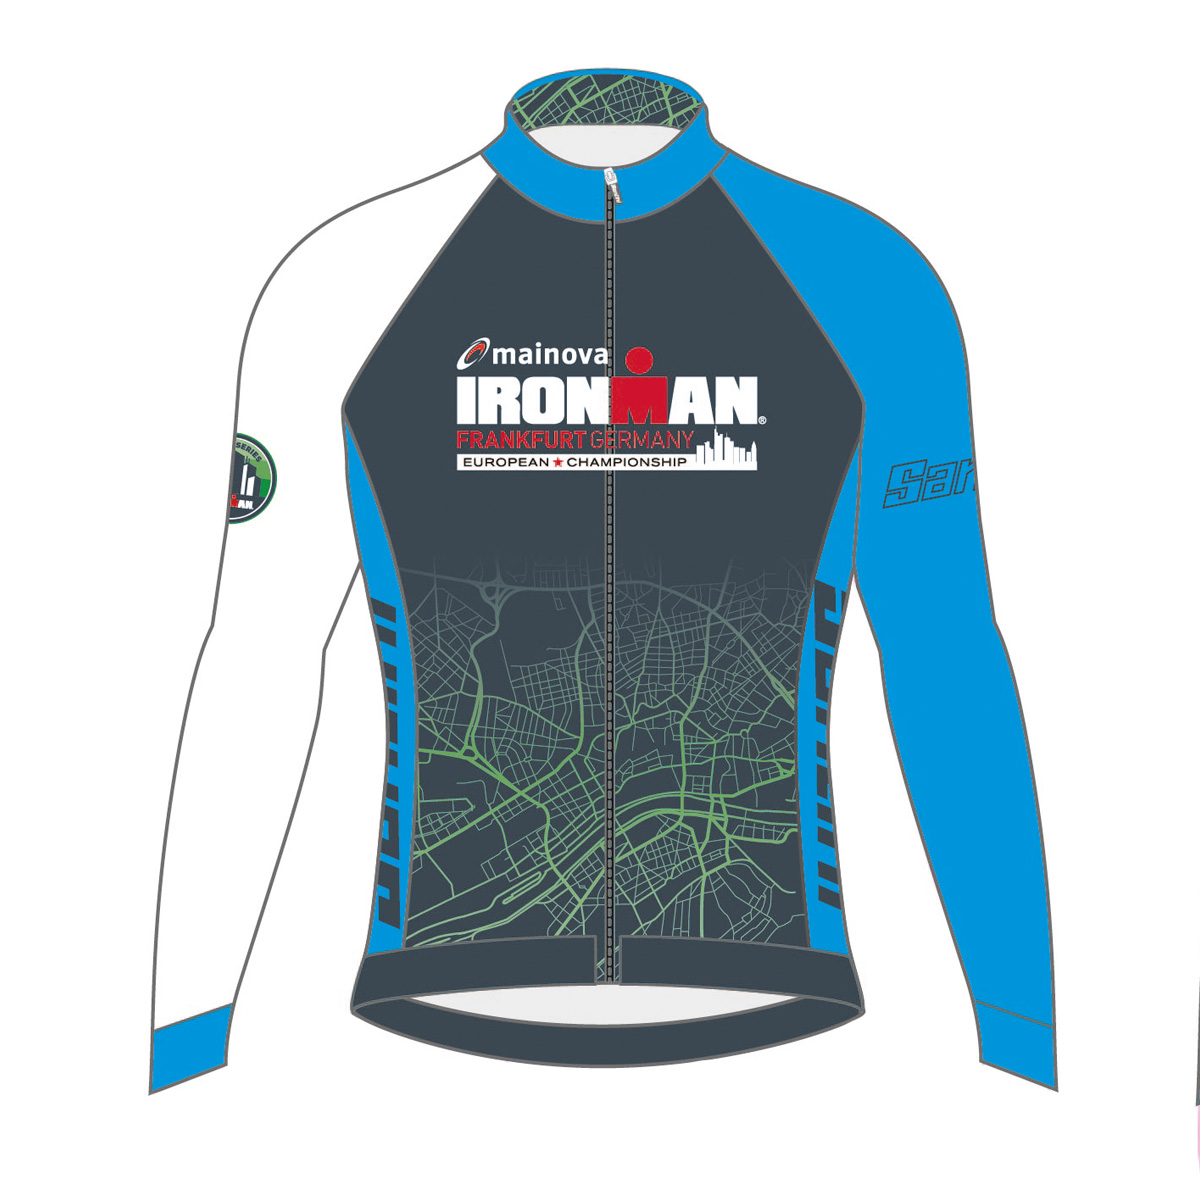 IRONMAN EUROPEAN CHAMPIONSHIP 2019 MEN'S FINISHER COURSE CYCLE JERSEY